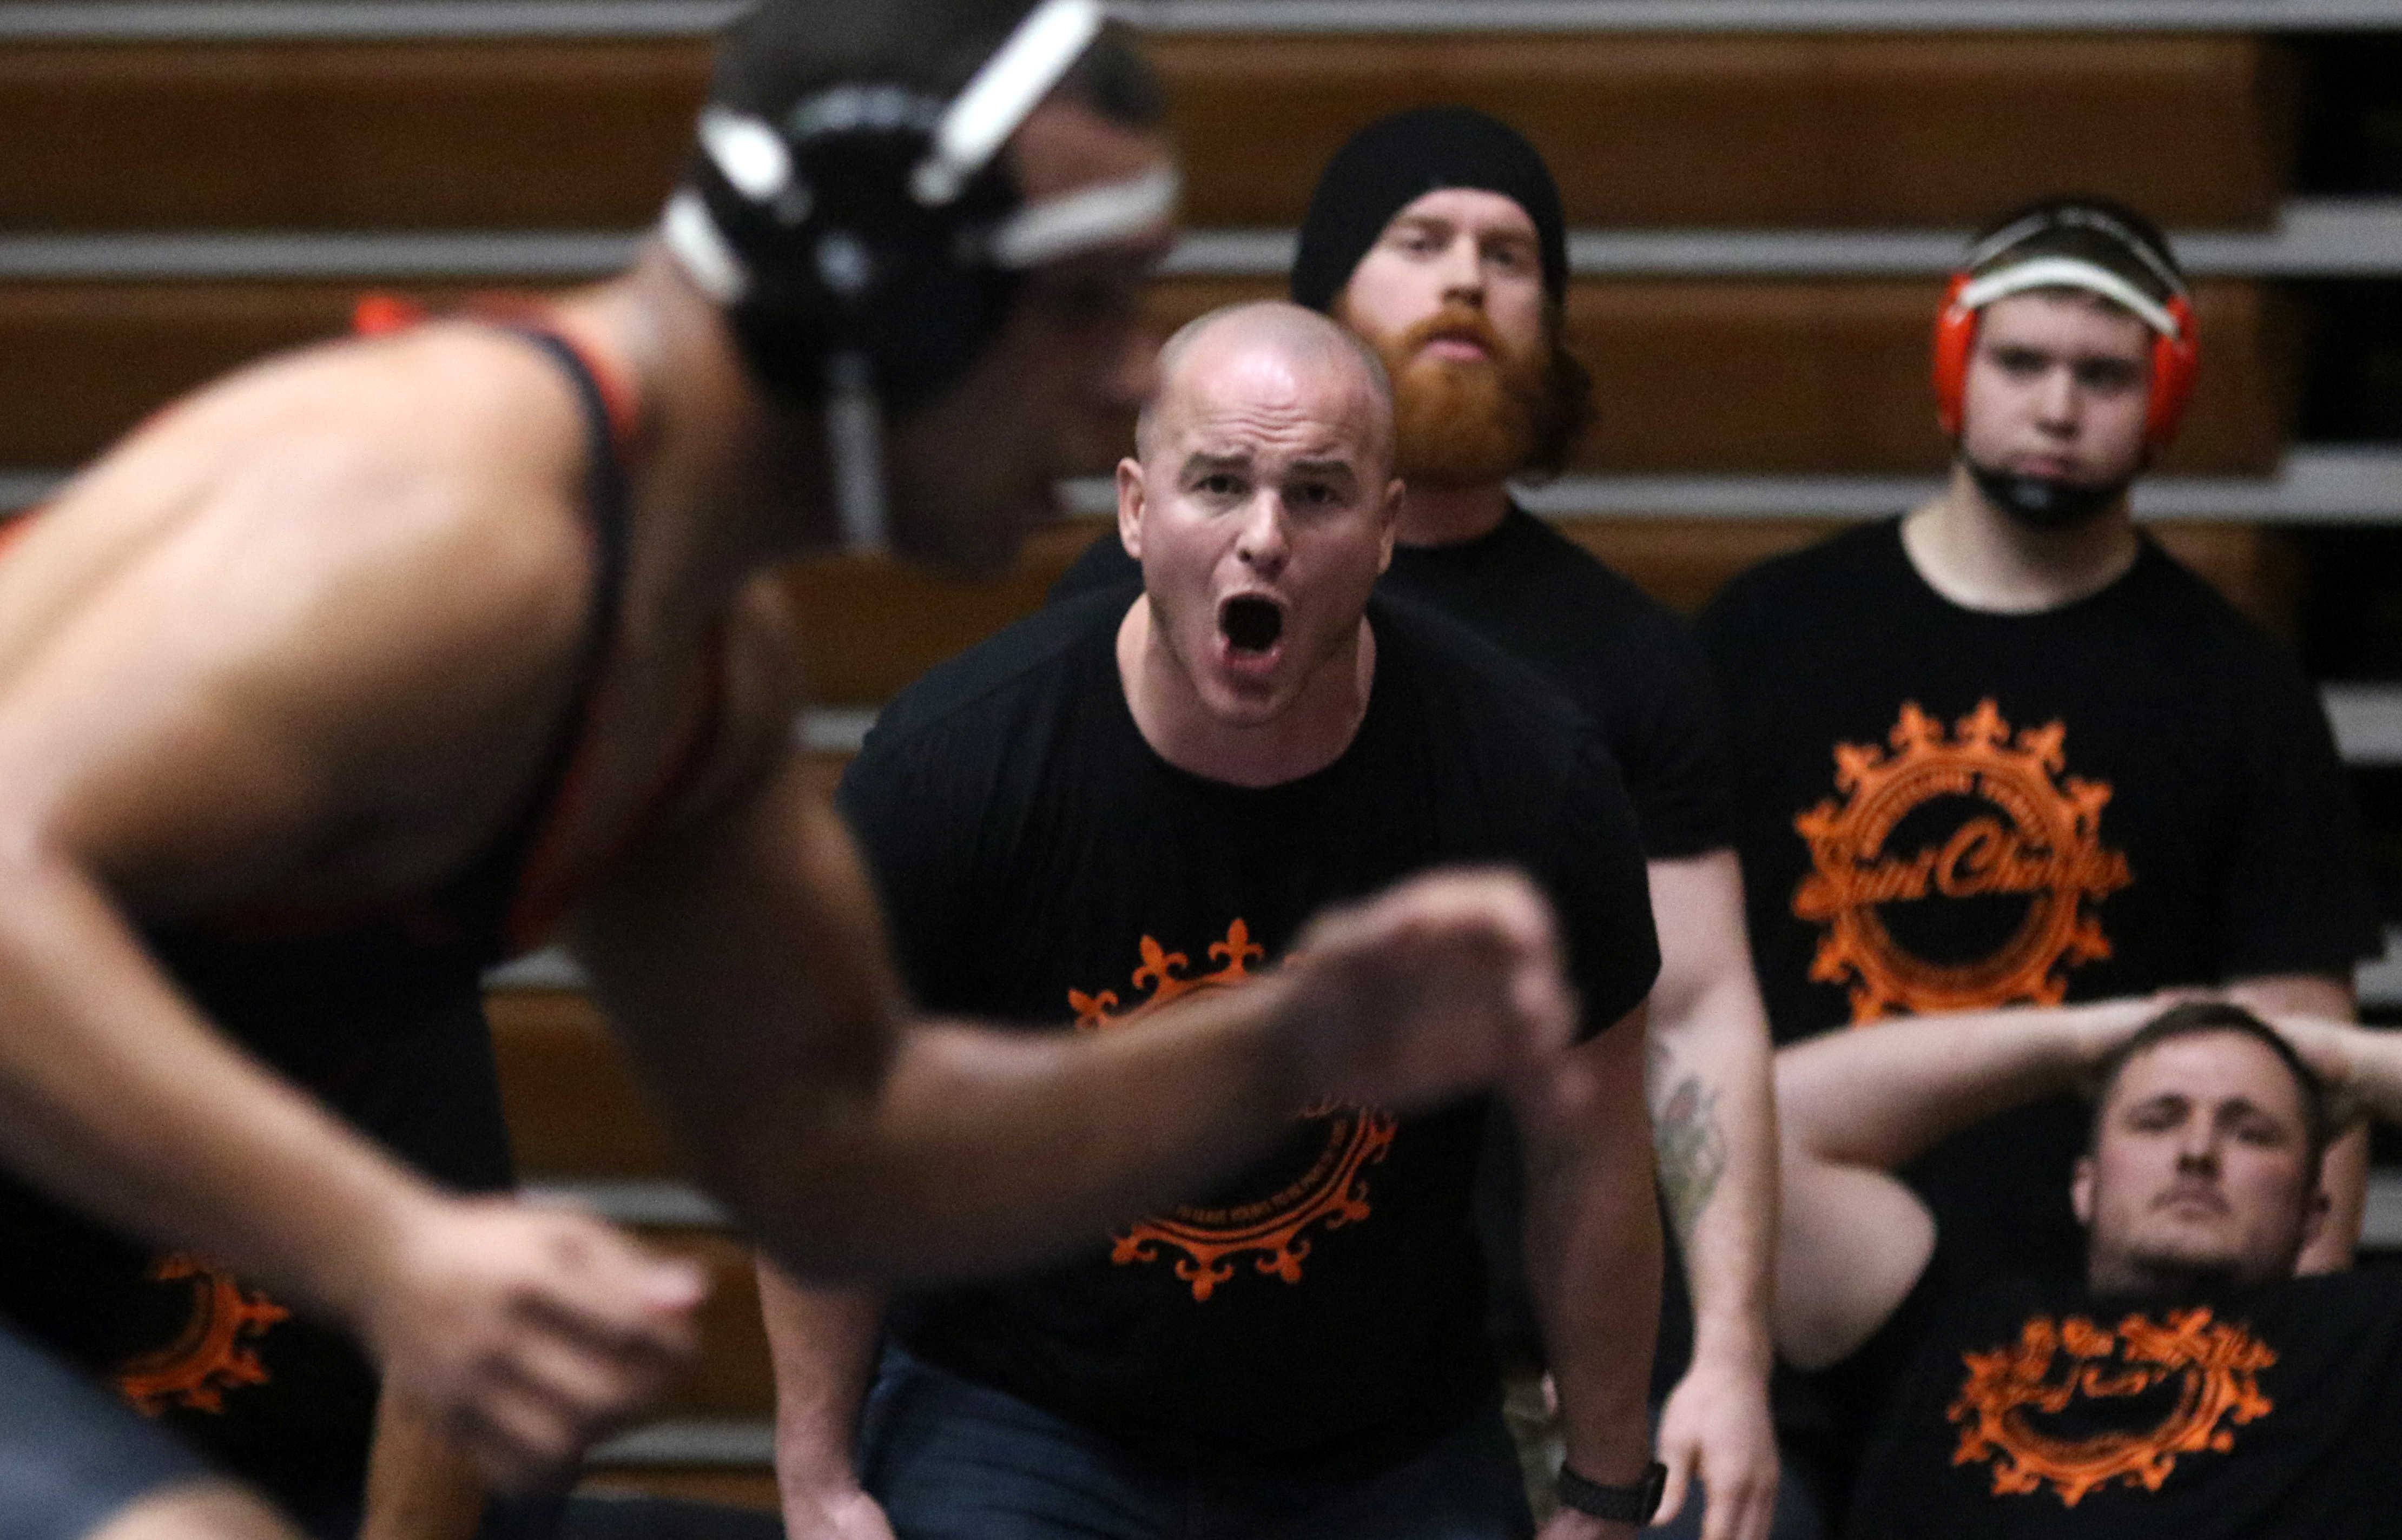 St. Charles East coach Jason Potter offers encouragement to  Darrell Gregg against Oak Park-River Forest's Elijah Osit during the 195-pound match of team wrestling sectional action at William N. Perry Gymnasium at Conant on Tuesday.